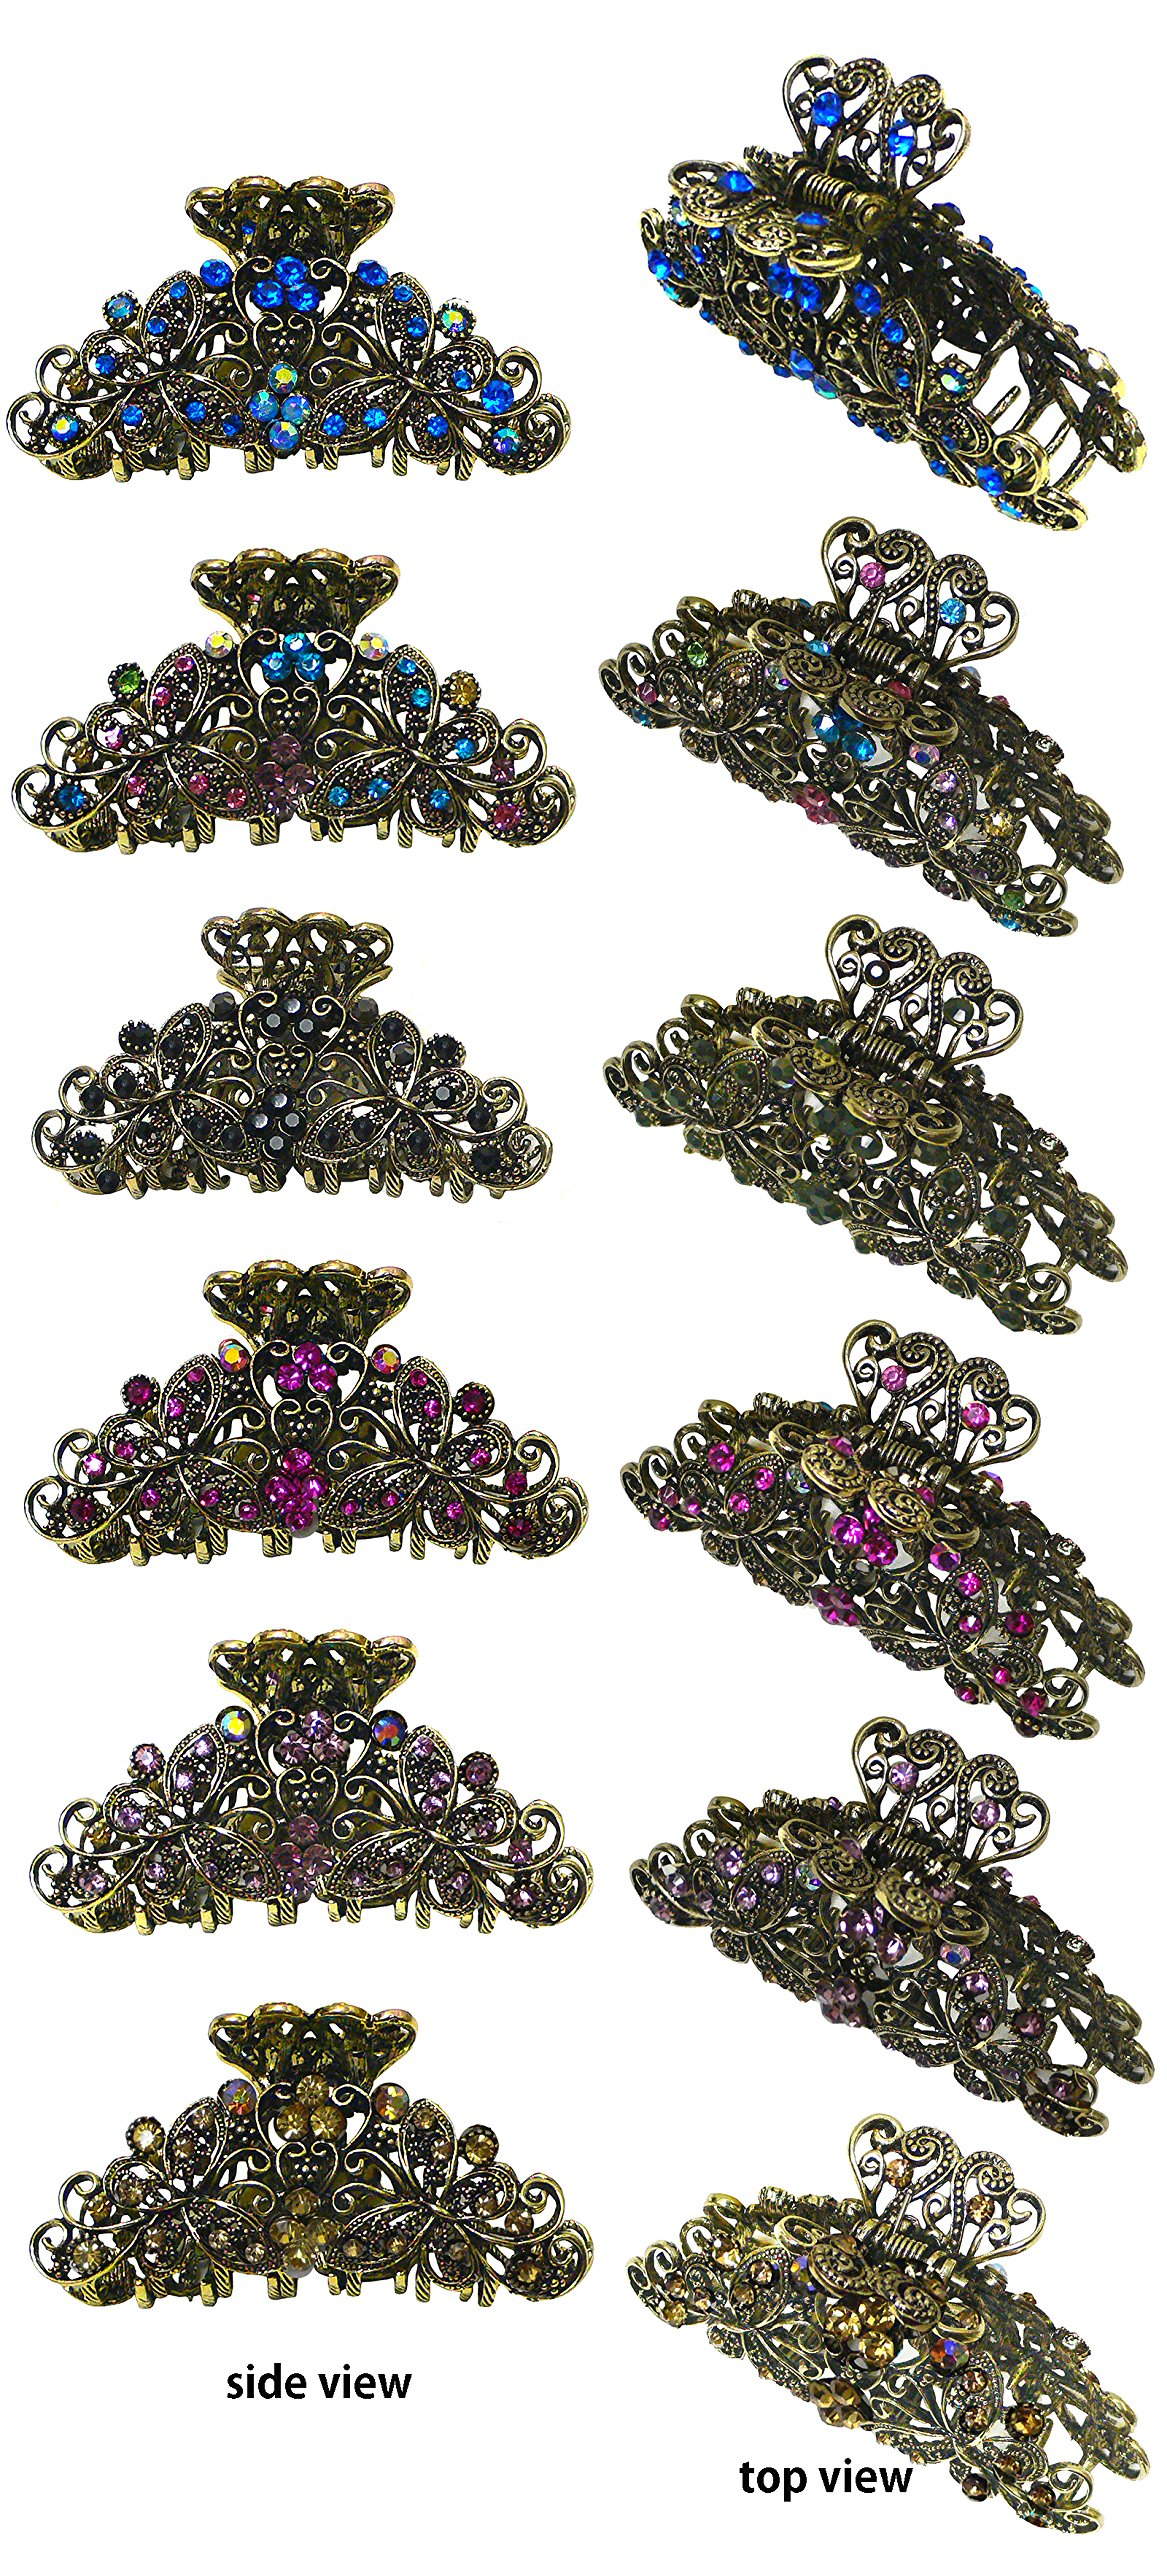 Set pf 6 Metal Jaw Clips Butterfly Claw Clips in Antique Gold Plating RW86410-6132-6